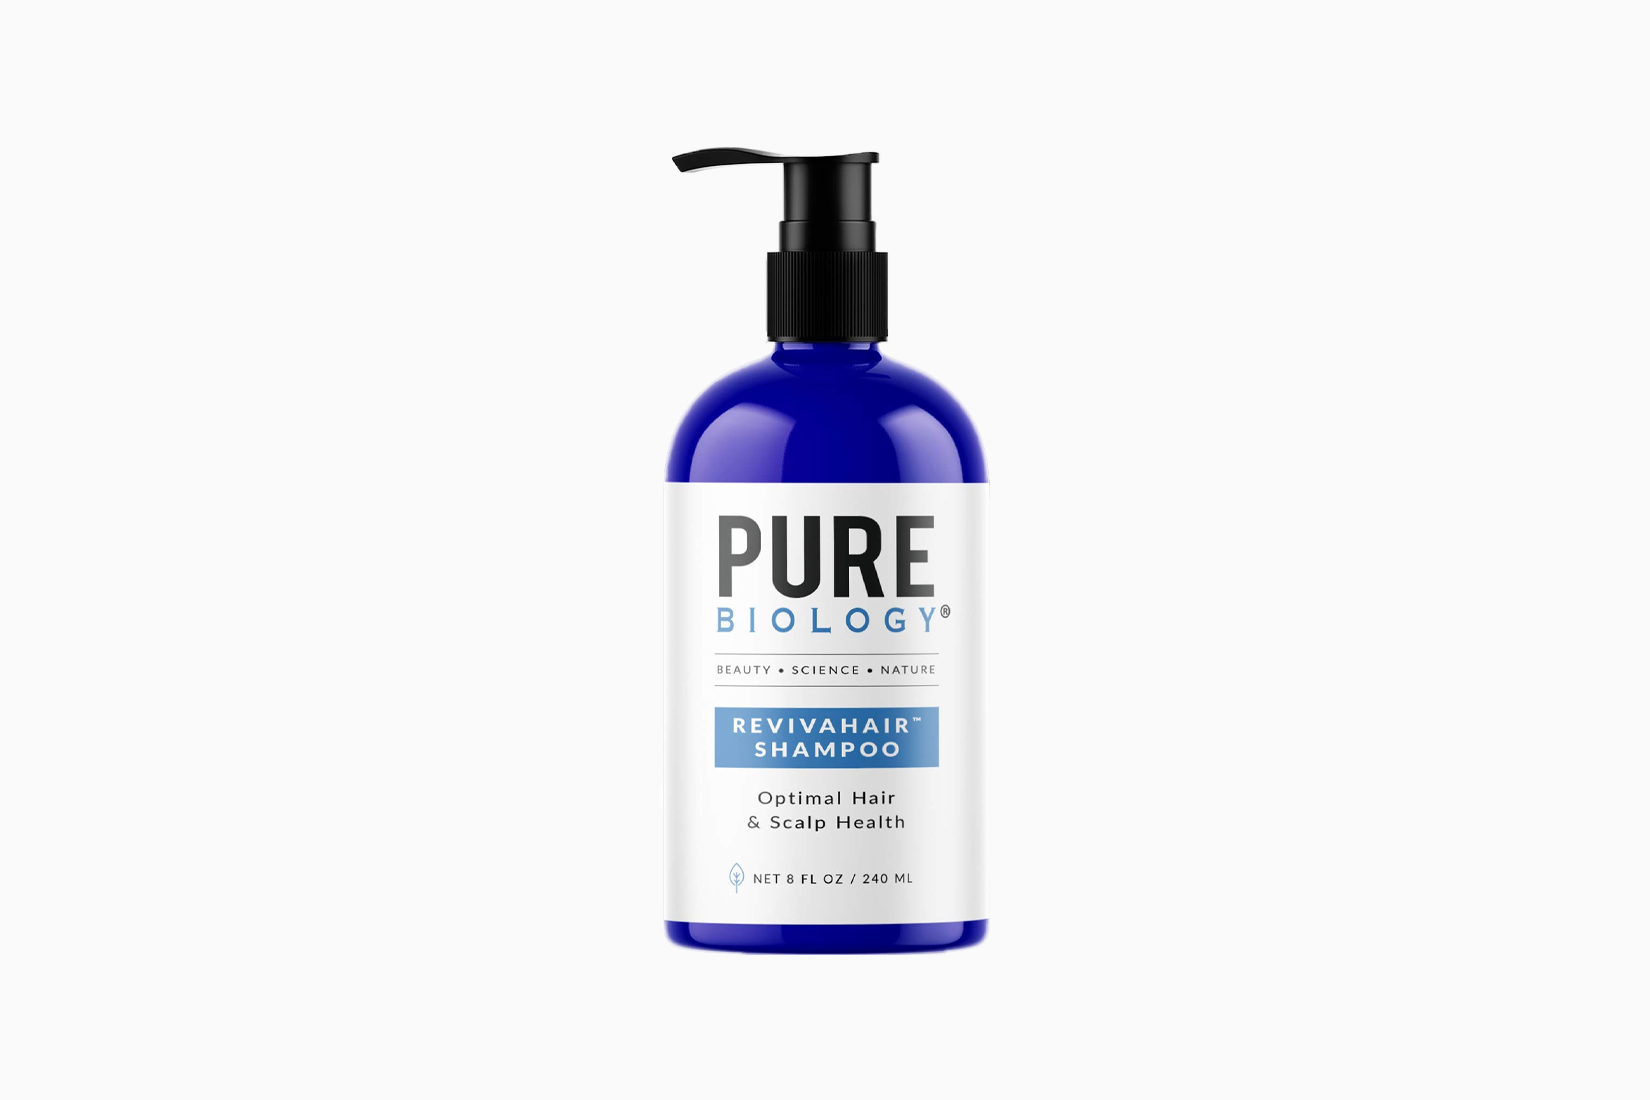 best hair growth shampoo women pure biology review - Luxe Digital